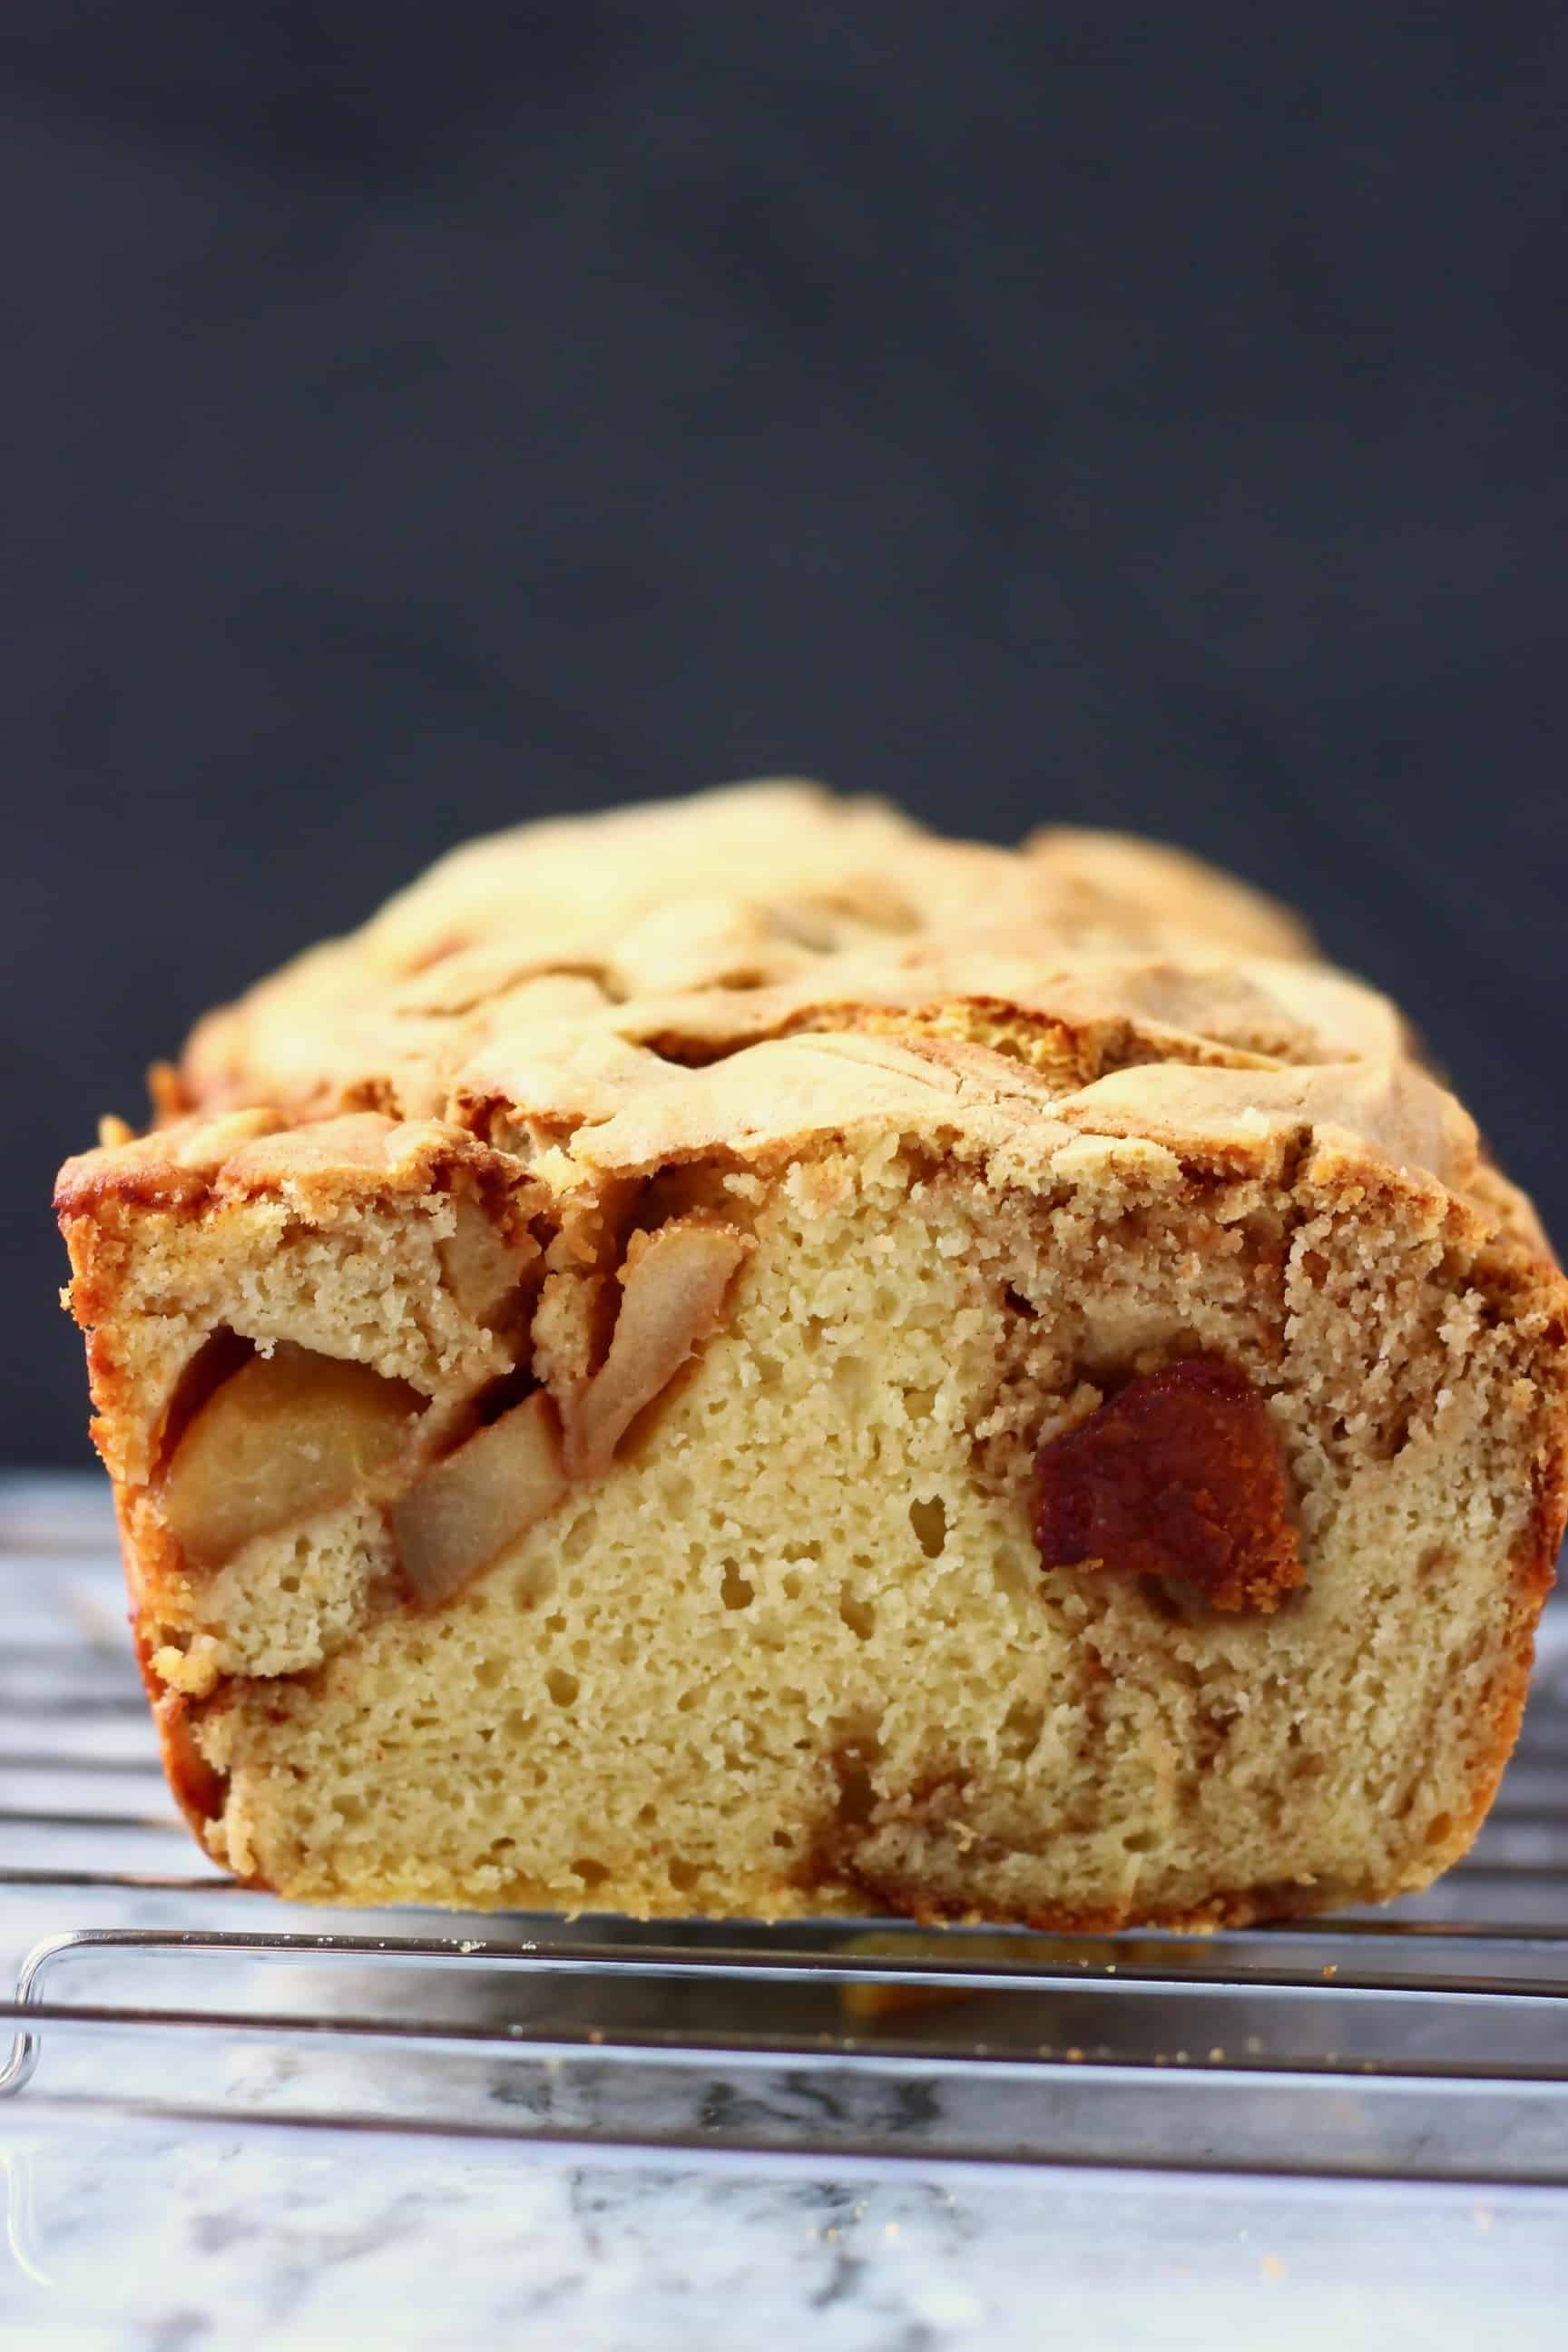 Sliced apple bread against a black background